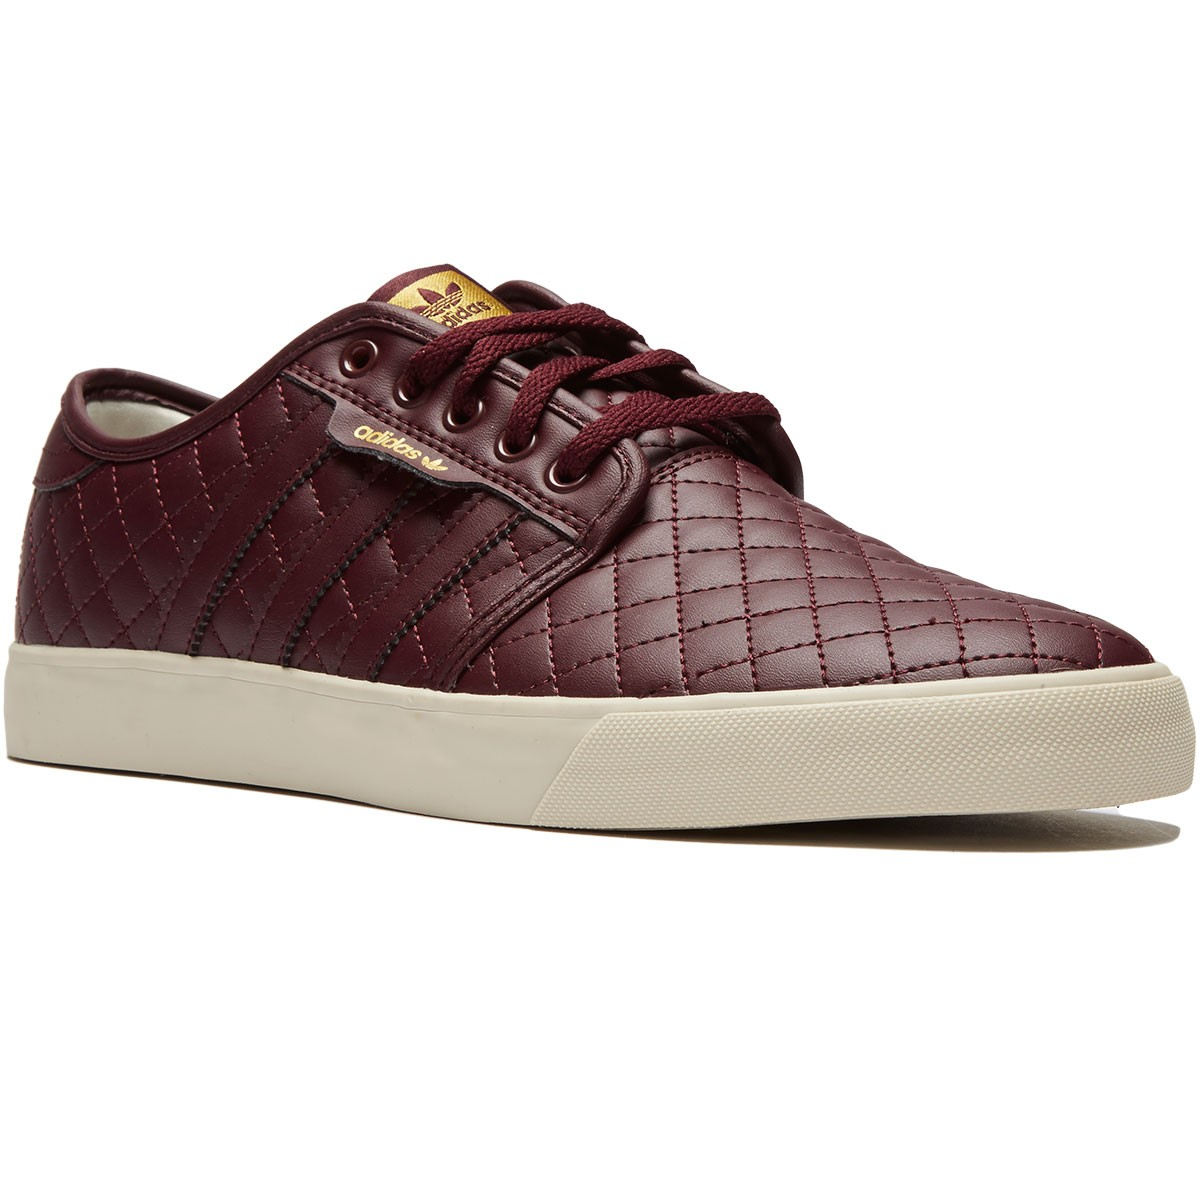 Adidas Seeley Shoes - Maroon/Maroon/Clear Brown